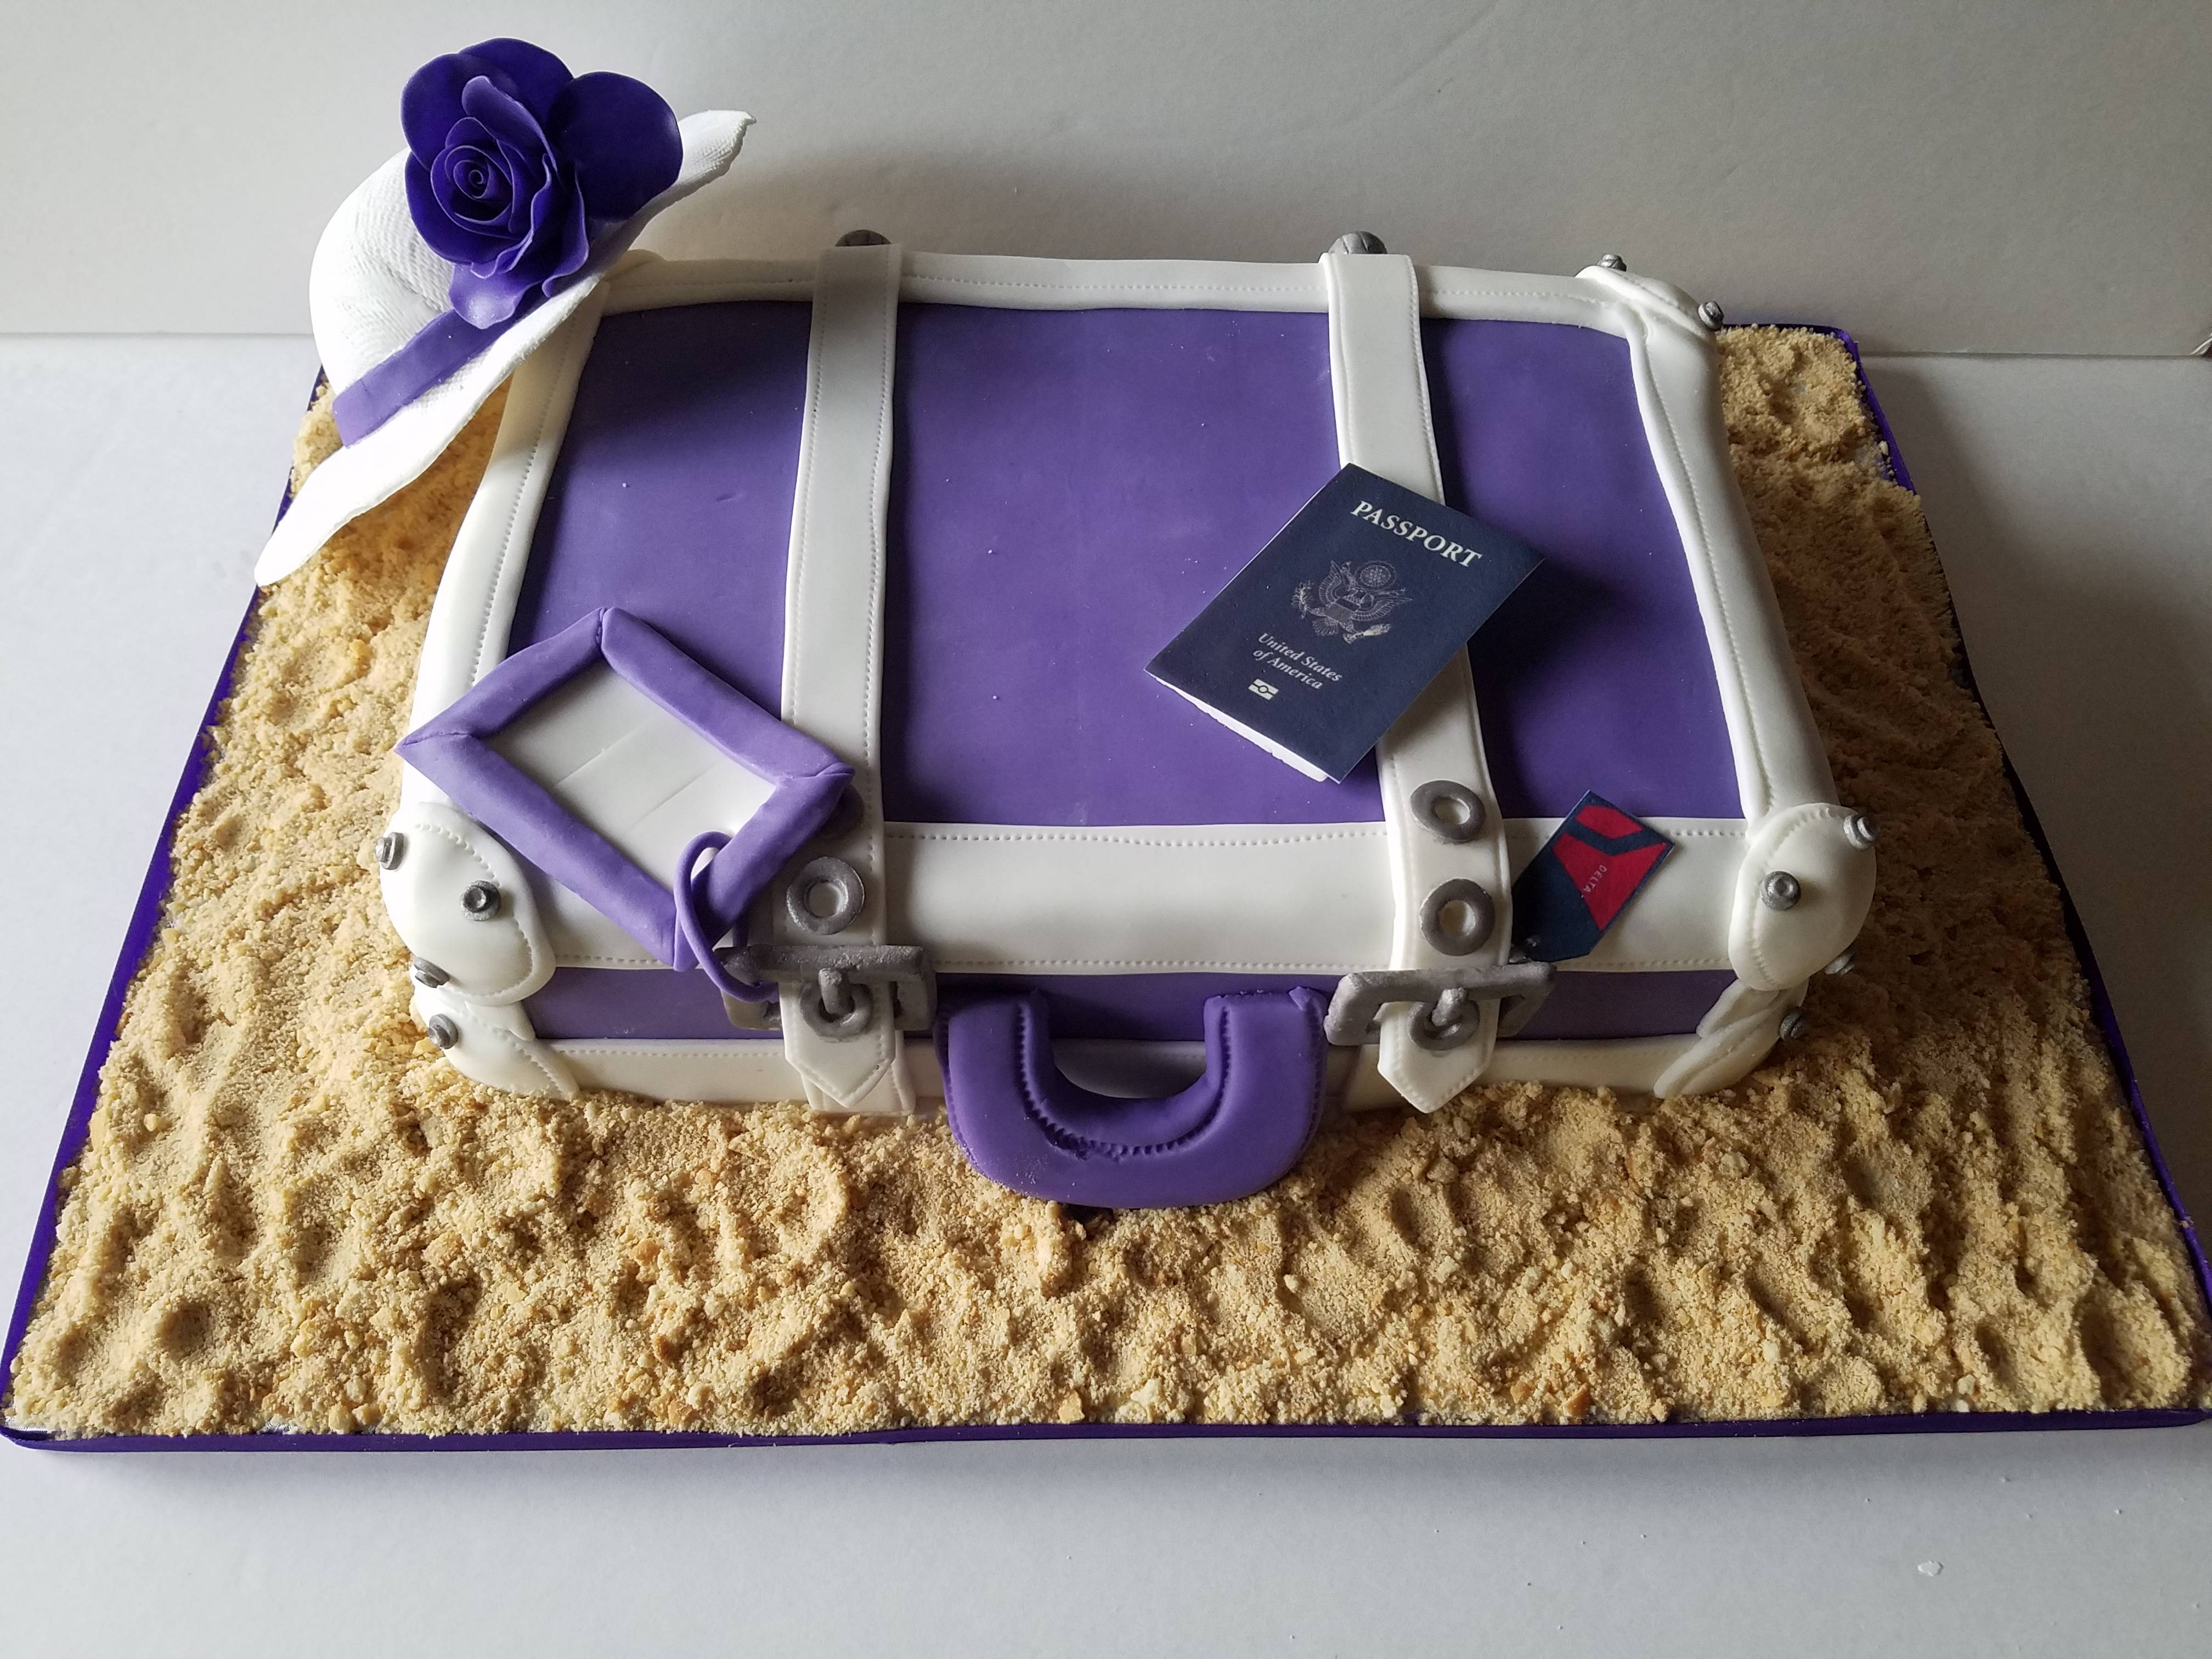 Suitcase cake for the traveler in your life